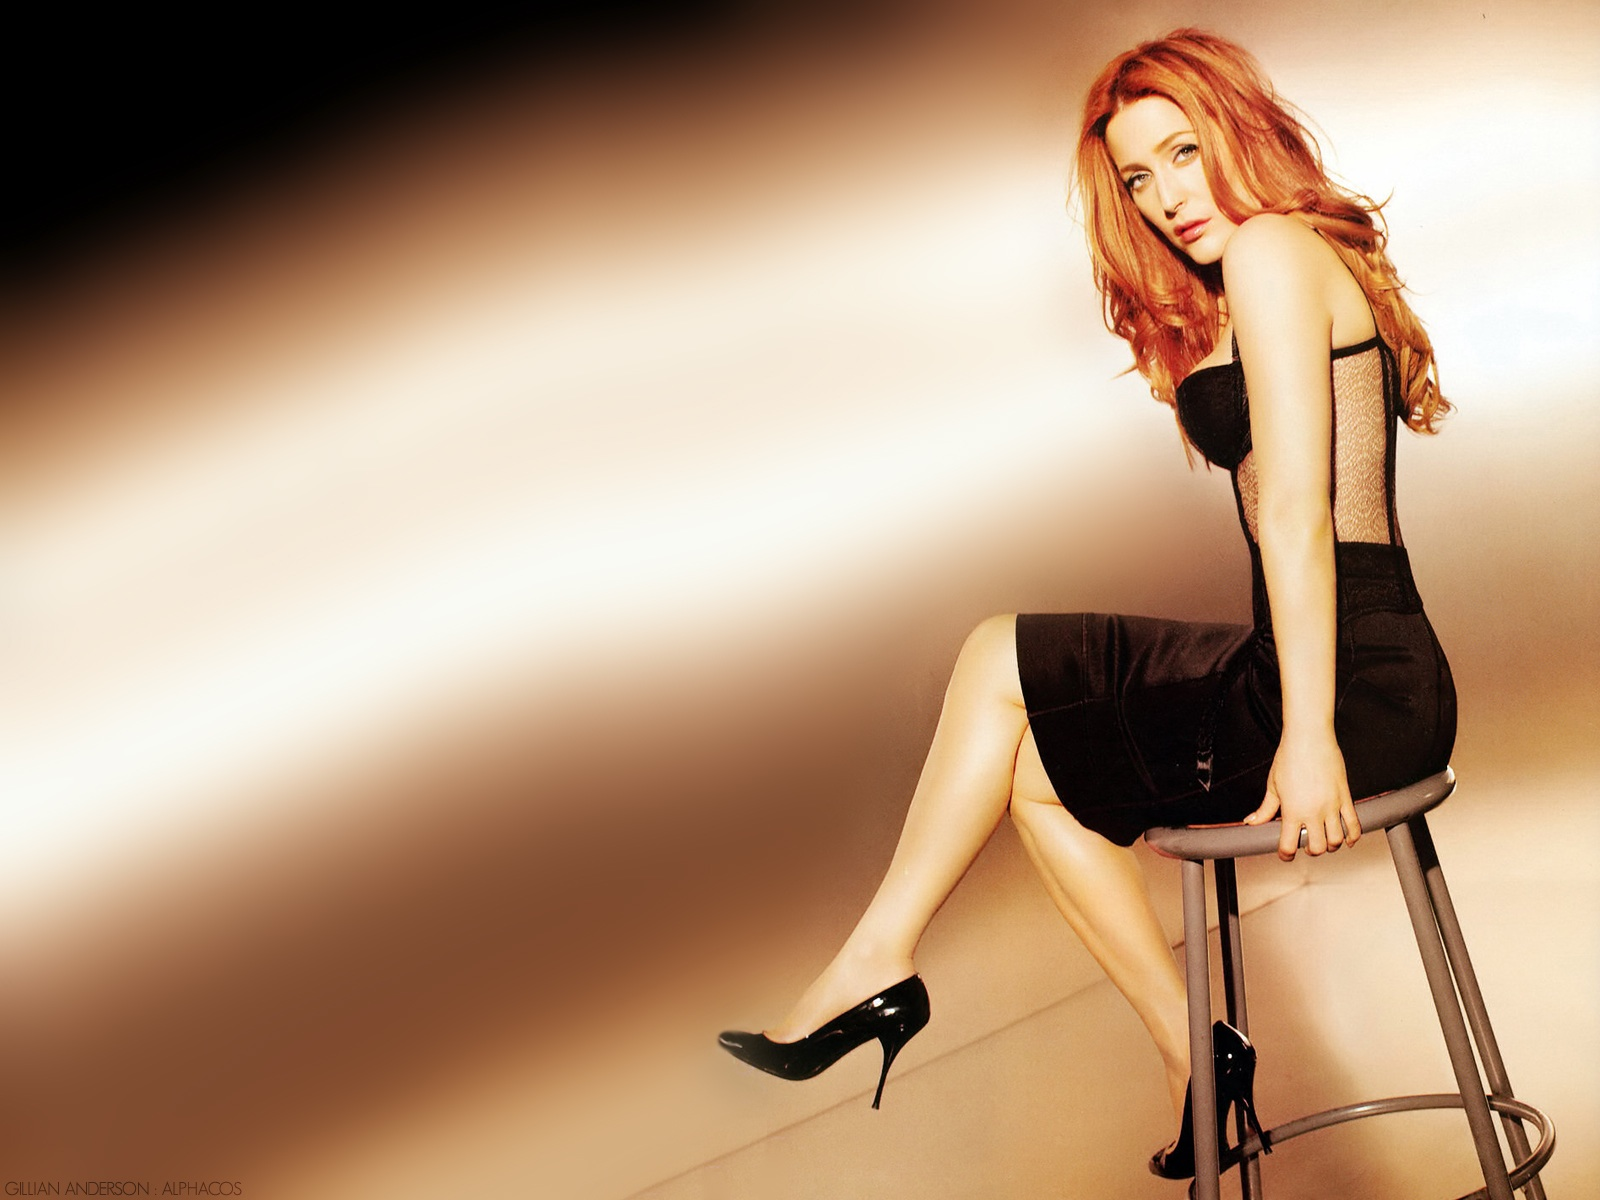 1600x1200 - Gillian Anderson Wallpapers 29